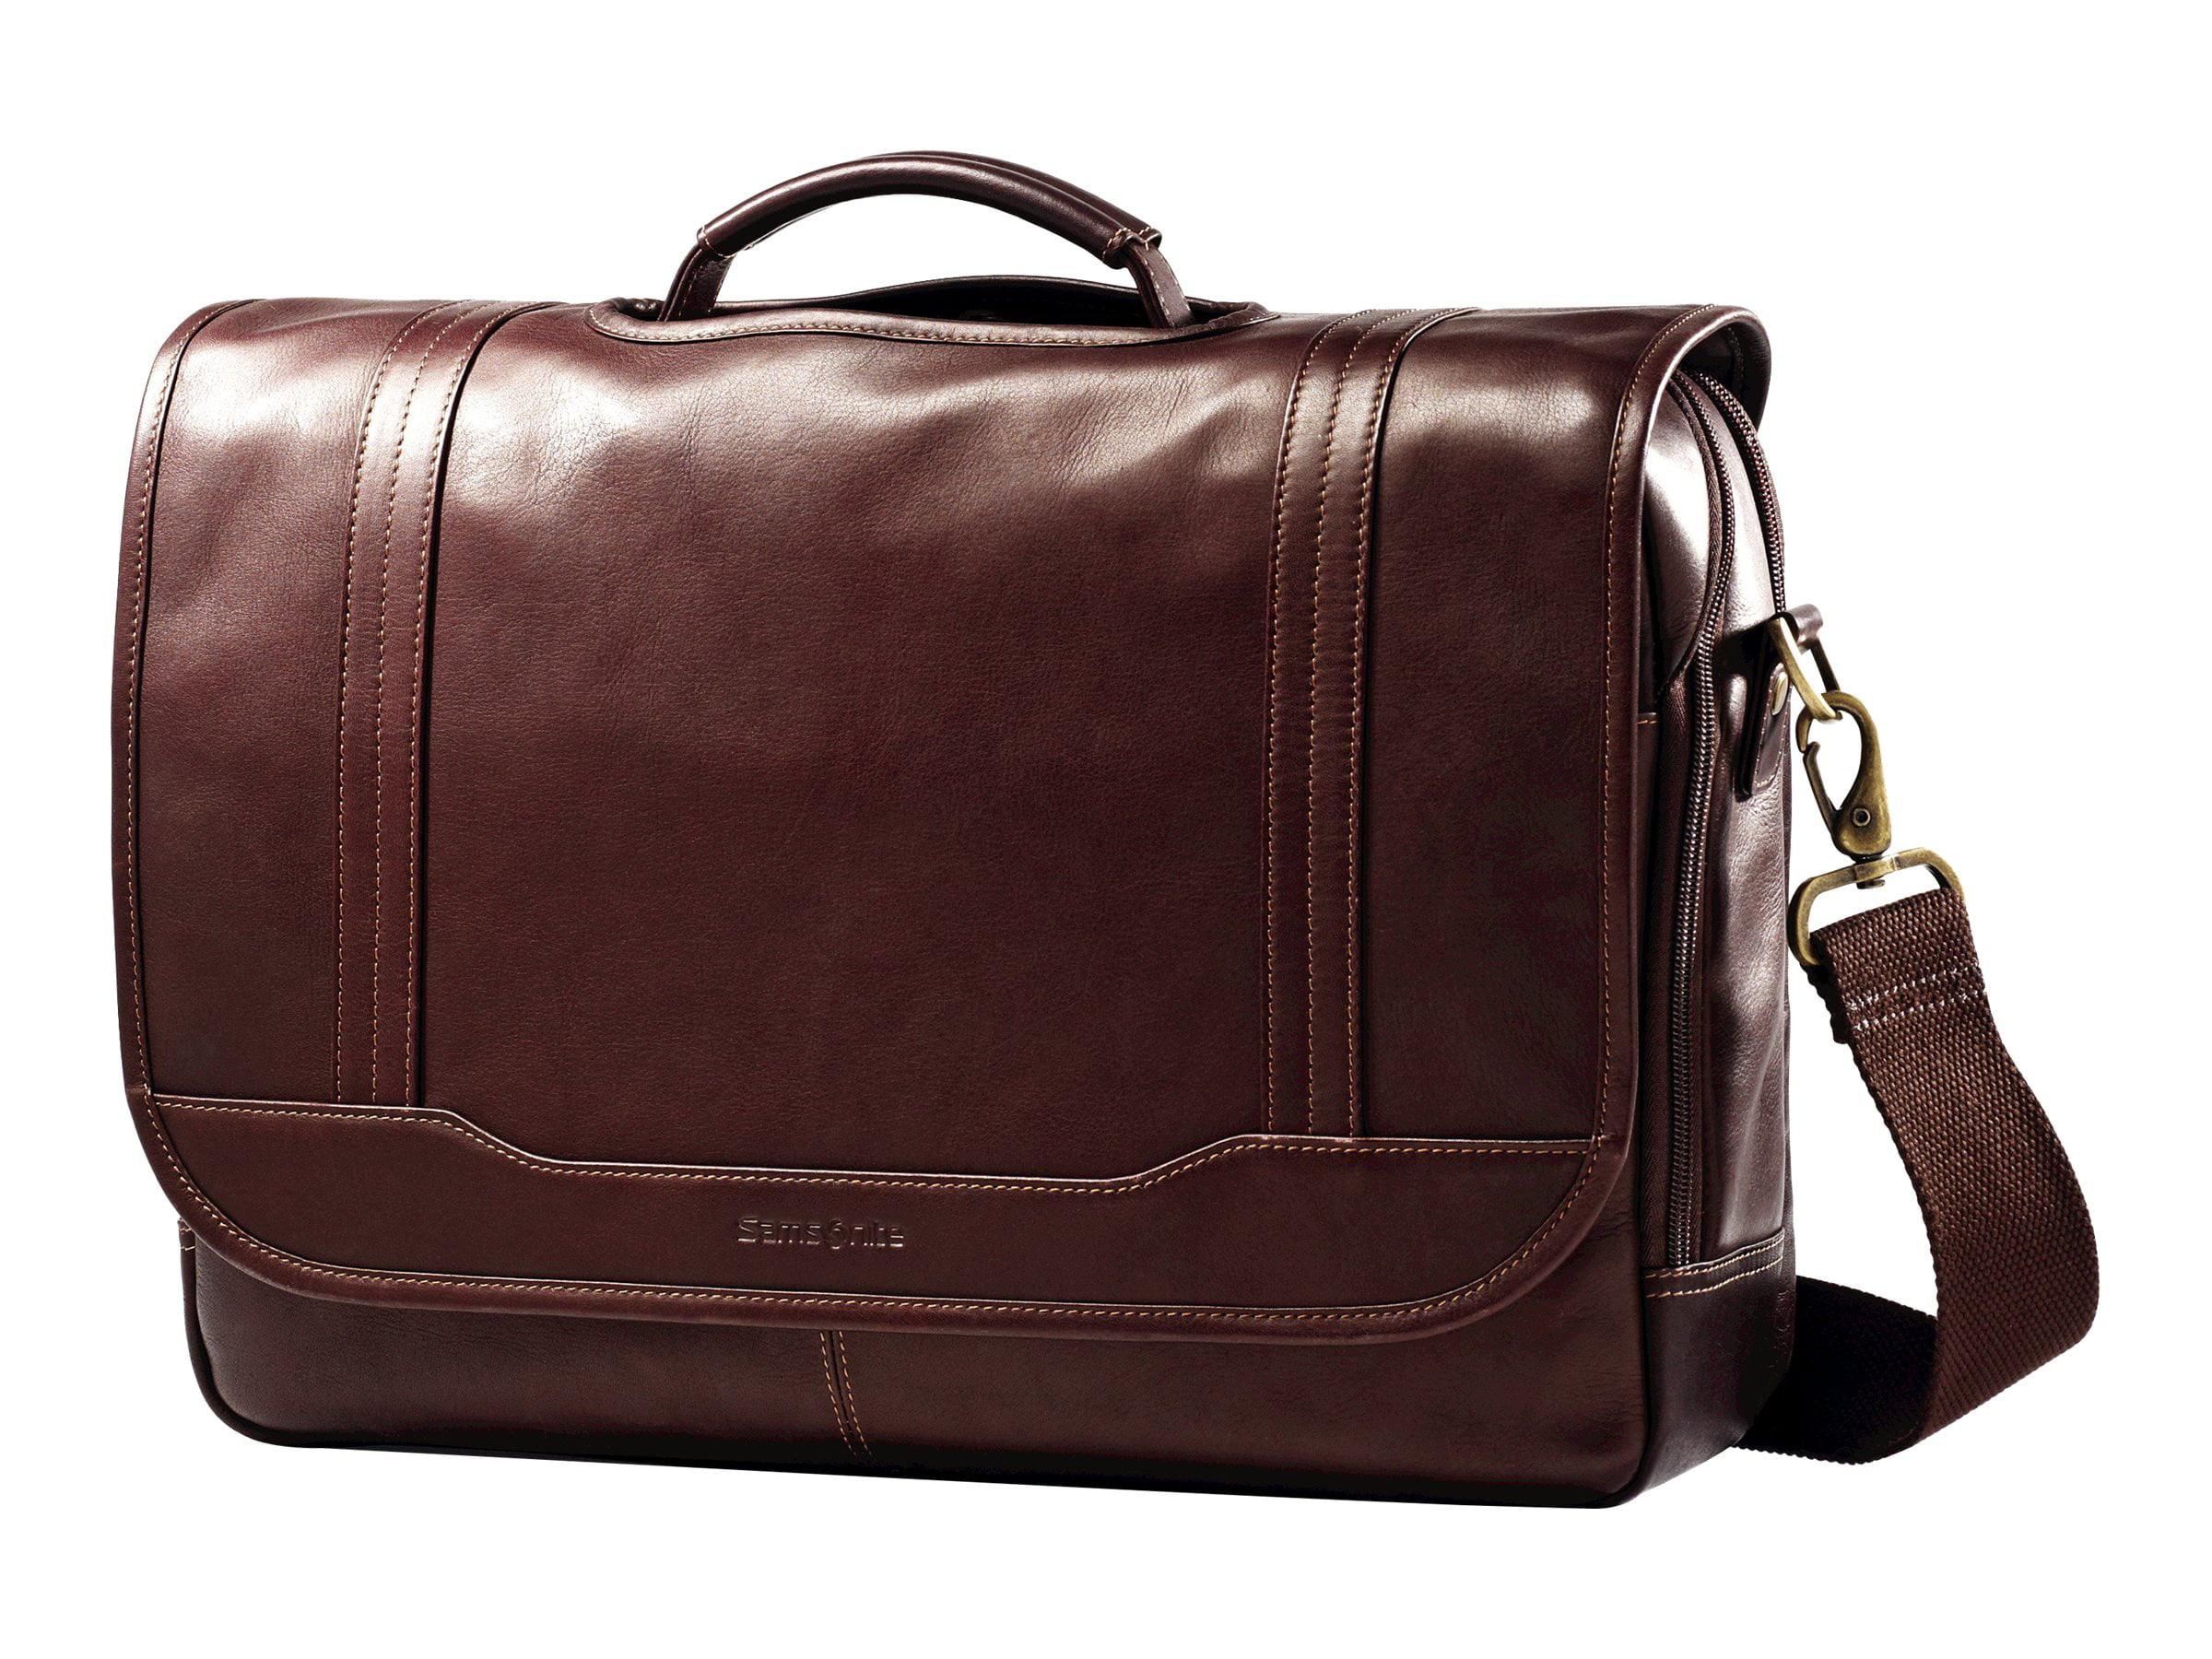 "Samsonite Columbian Leather Flapover Briefcase Notebook carrying case 15.6"" brown by Samsonite"